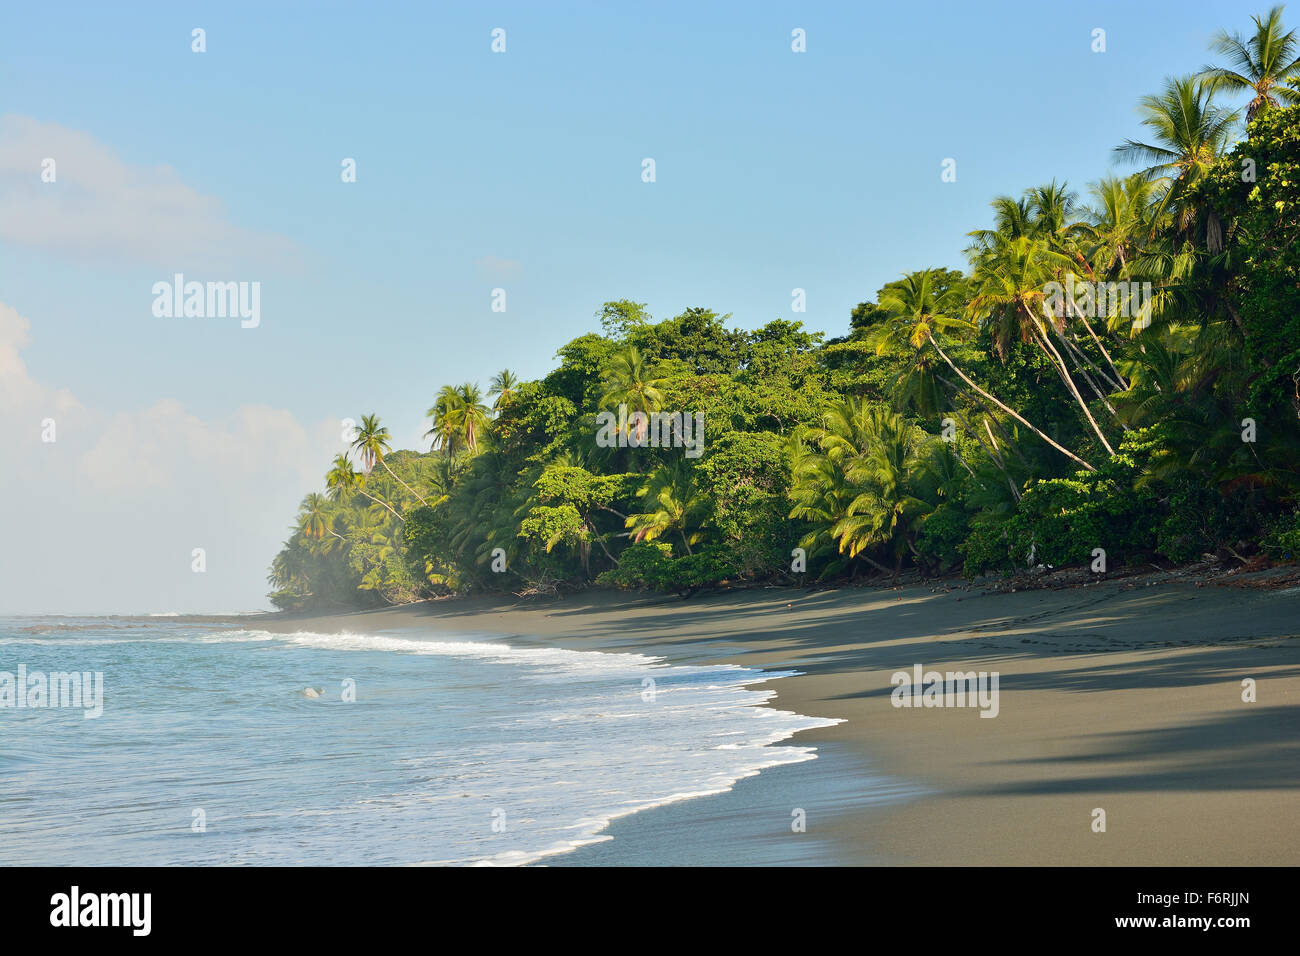 Plage dans le parc national de Corcovado du Costa Rica Photo Stock